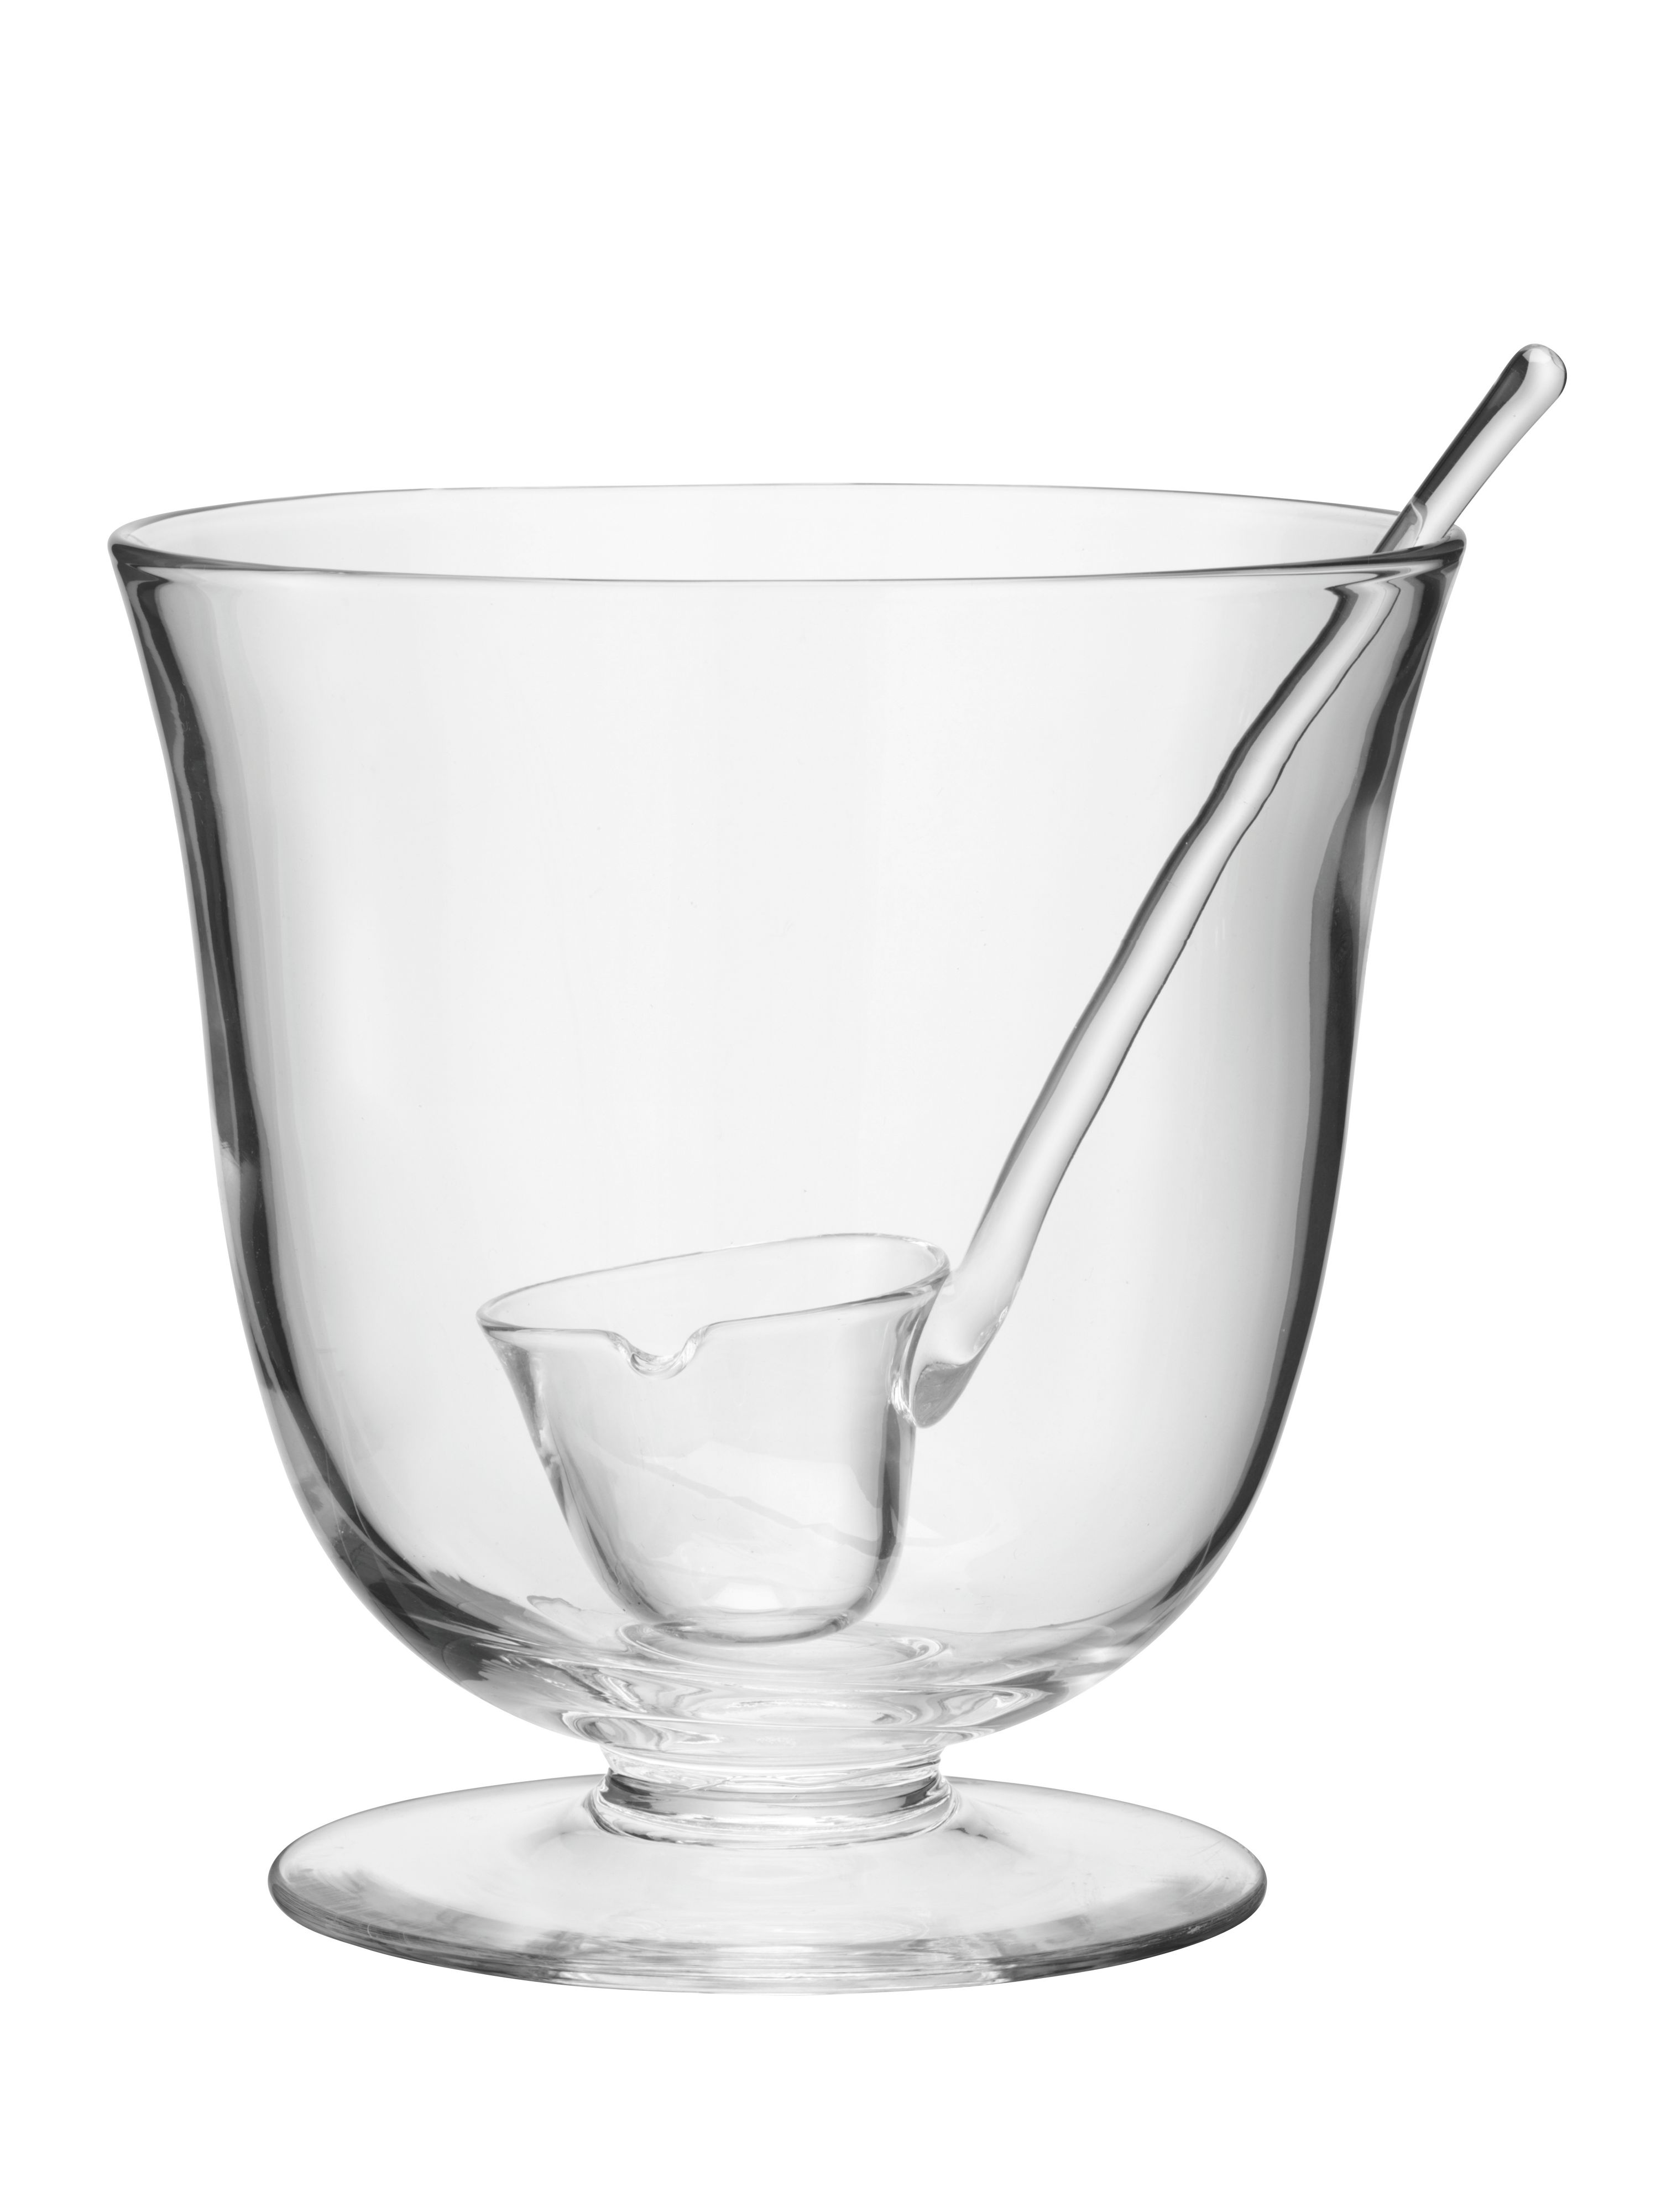 Serve punch bowl and ladle